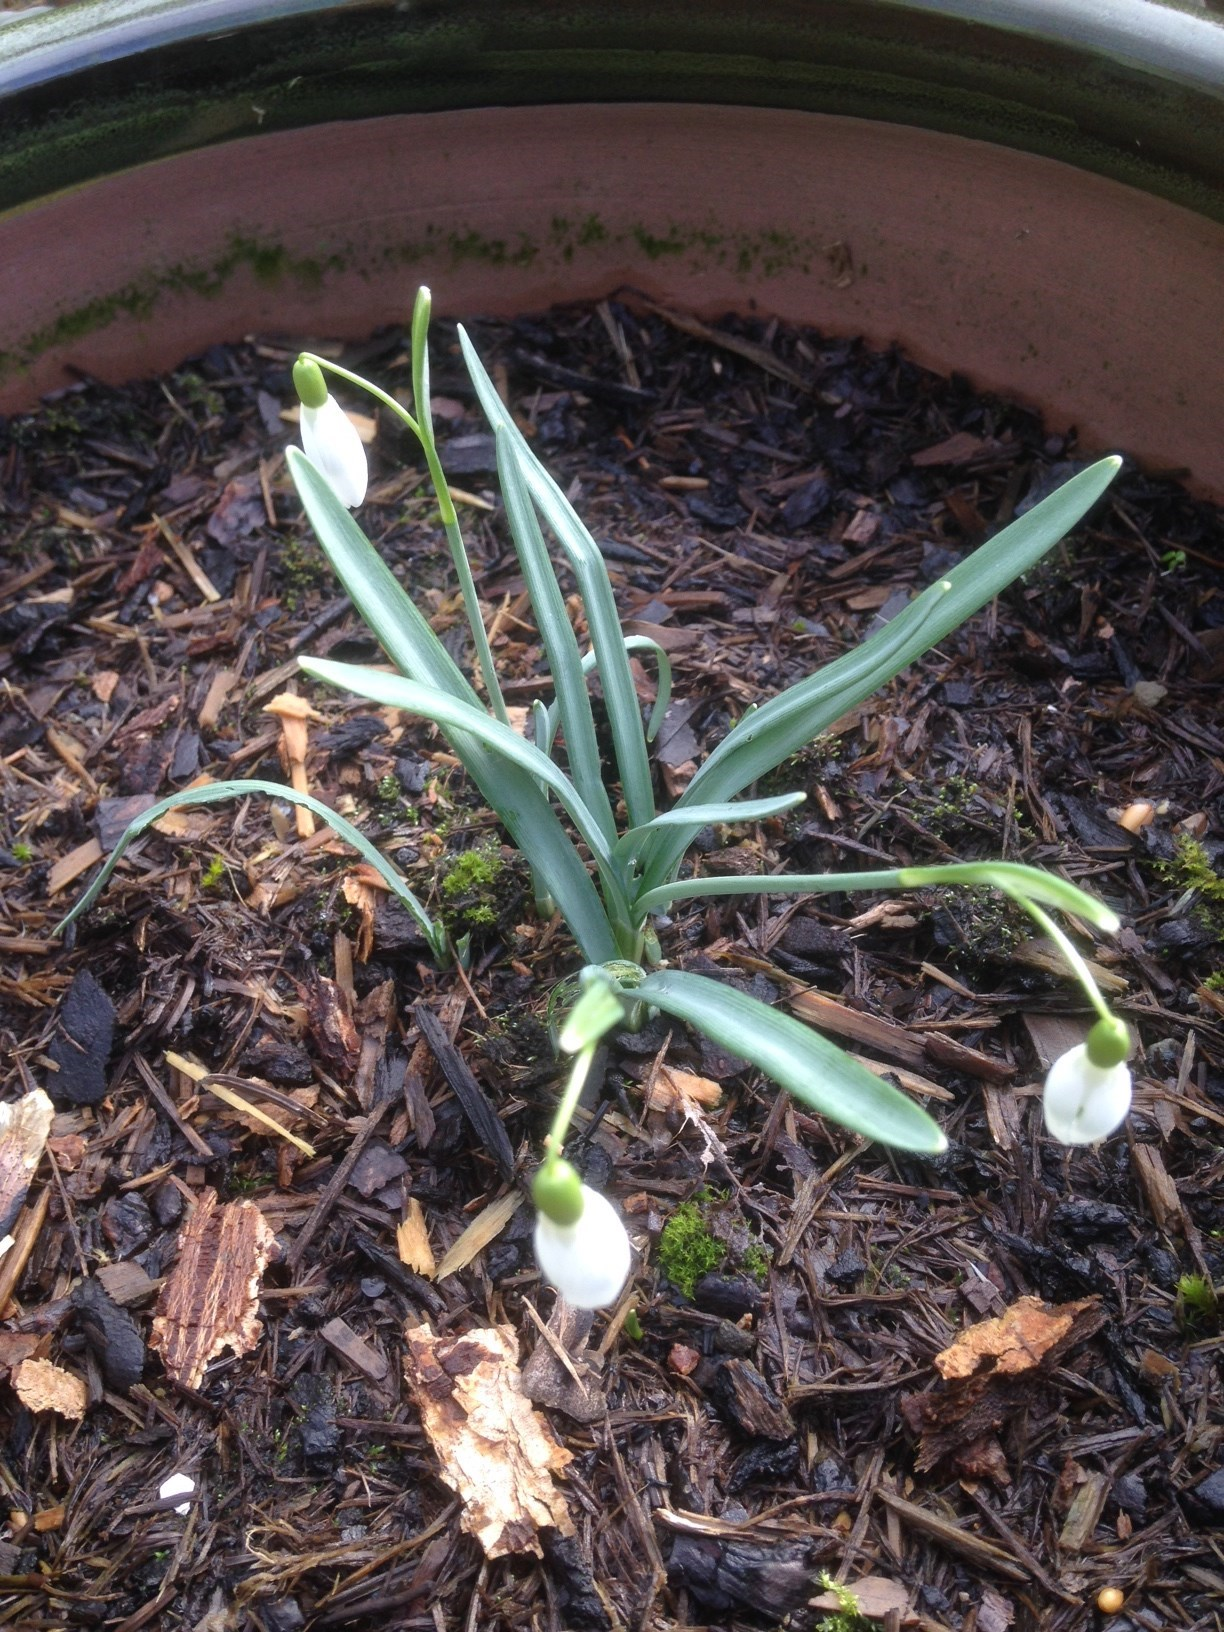 Where there was one of Eva's snowdrops there are now three!